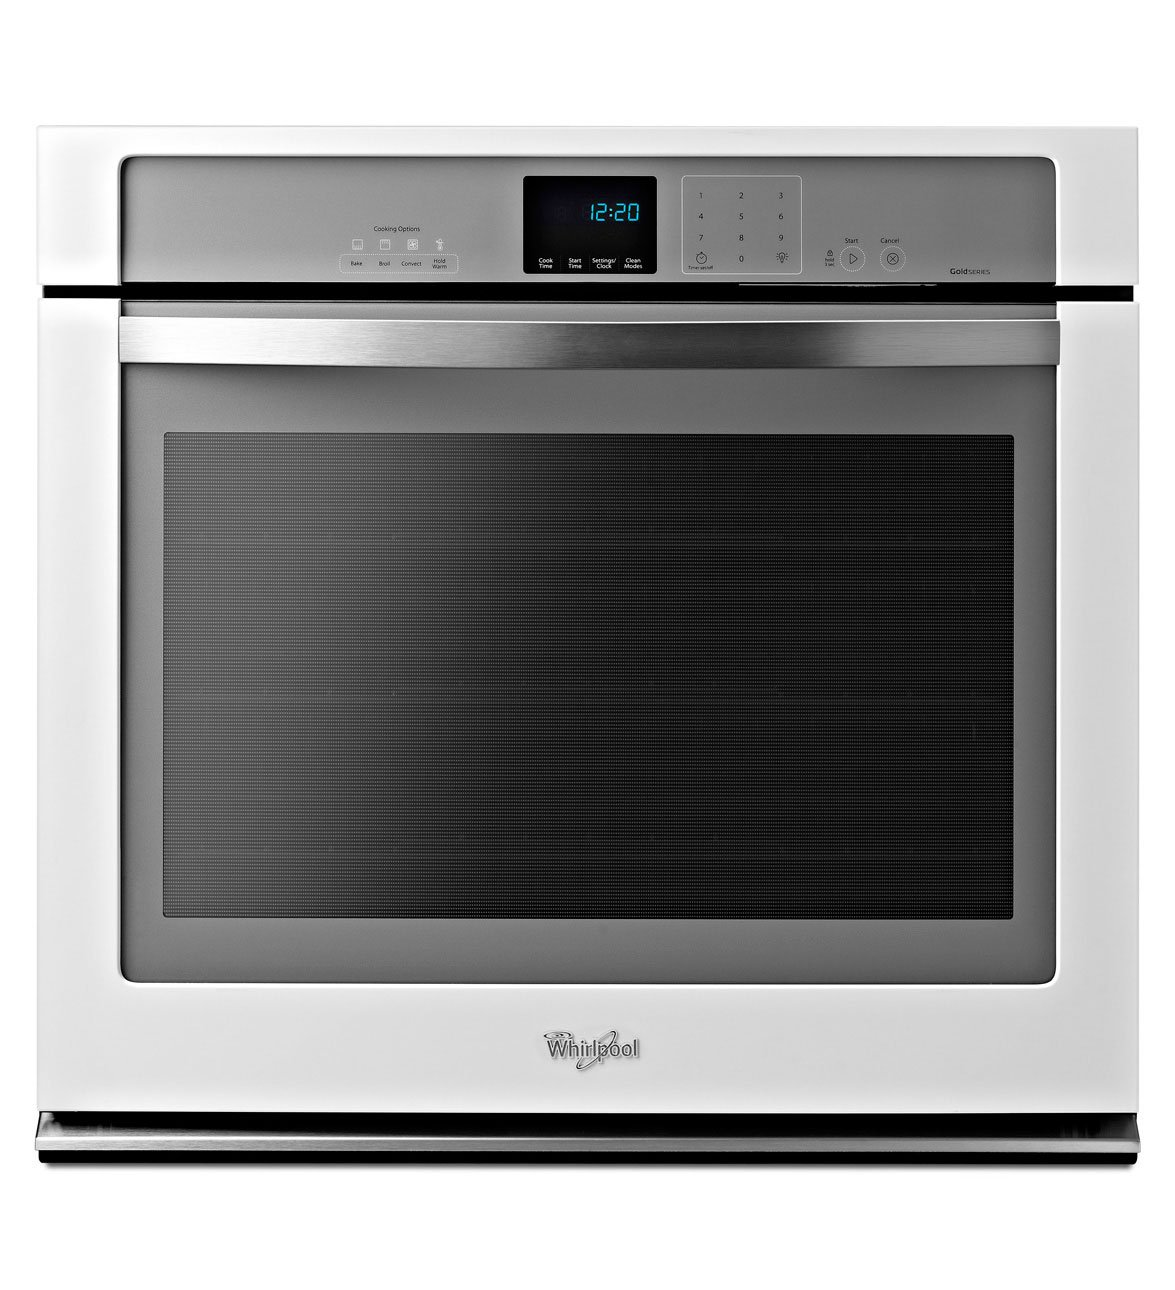 Amazon.com: Whirlpool wos92ec0as 30